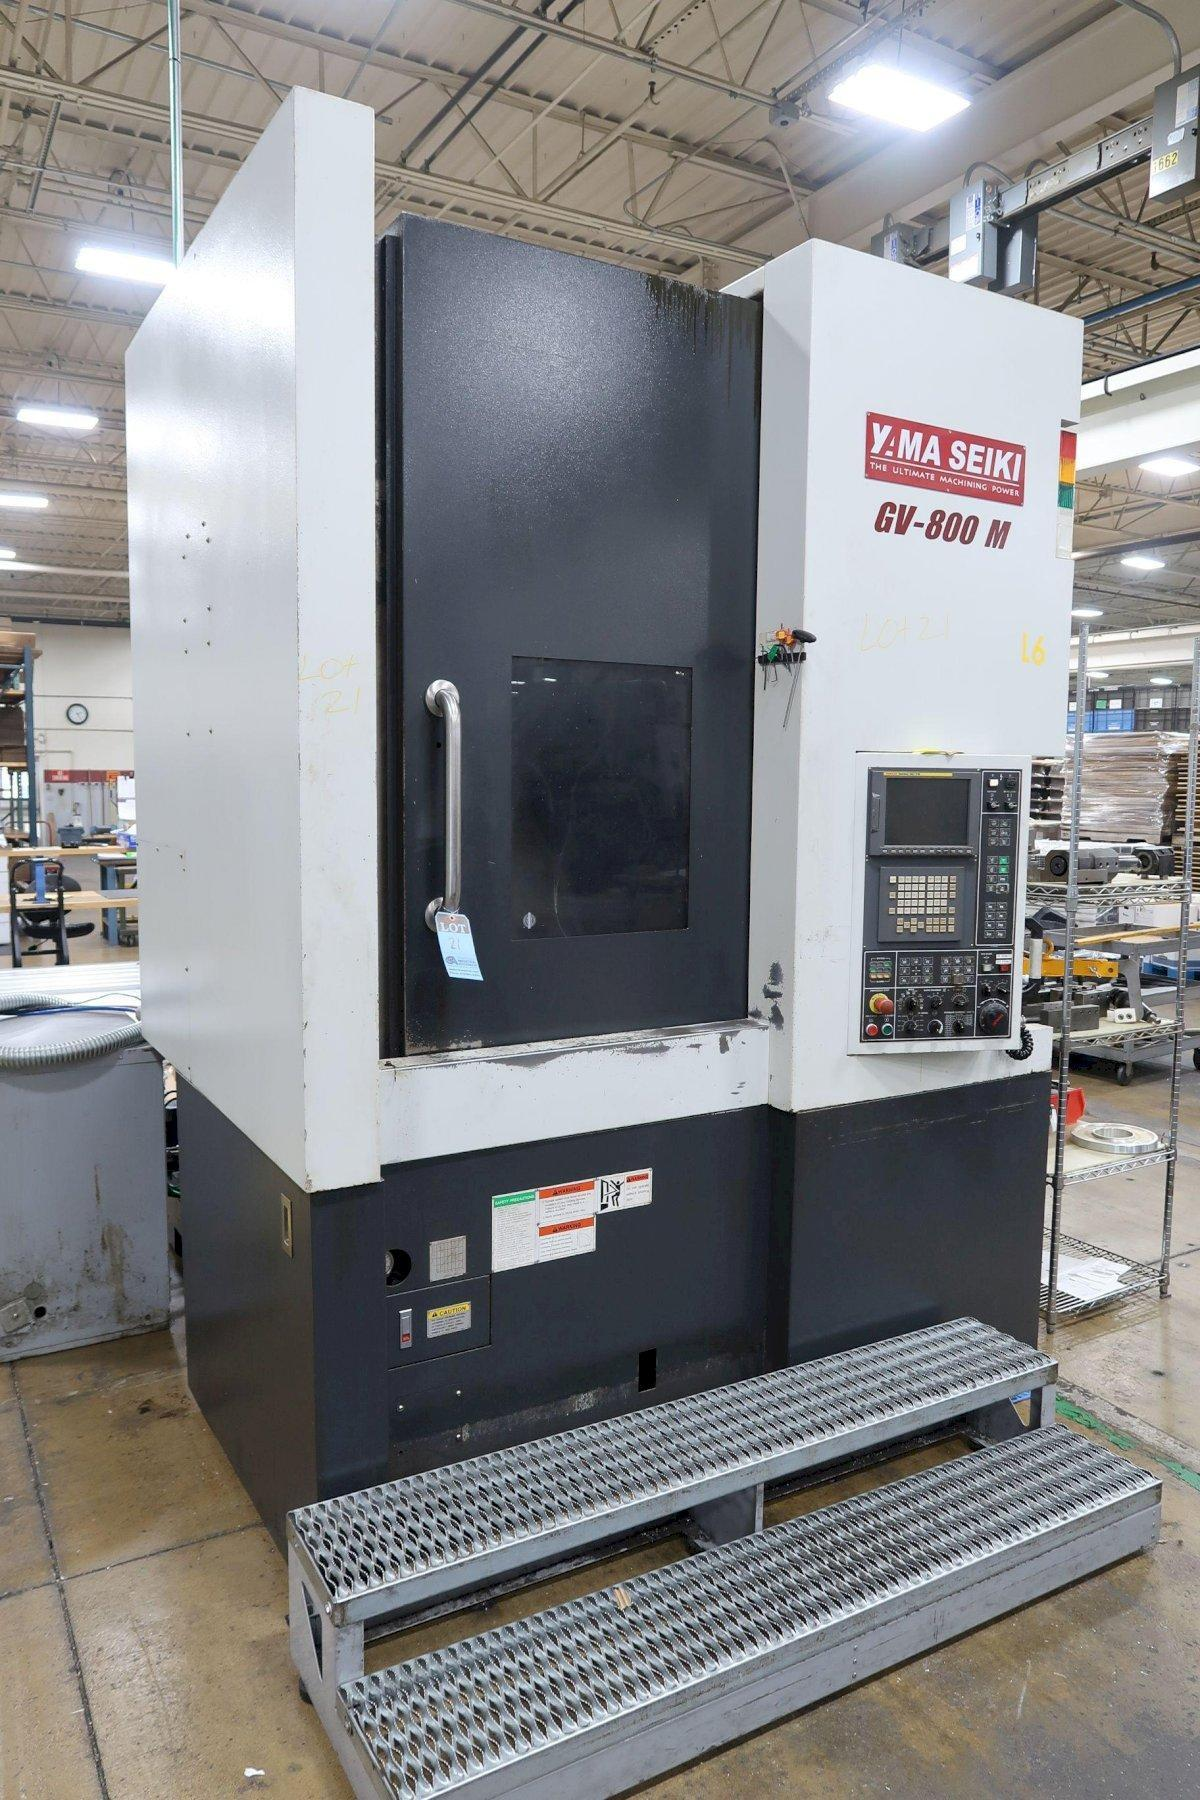 "Yama Seiki GV800M CNC Vertical Turning Lathe, Fanuc 18iTB, 18"" Chuck, 33"" Swing, 1500 RPM, Milling, C-Axis, A2-11, 30 HP, 25.5"" Under Rail, 2011"